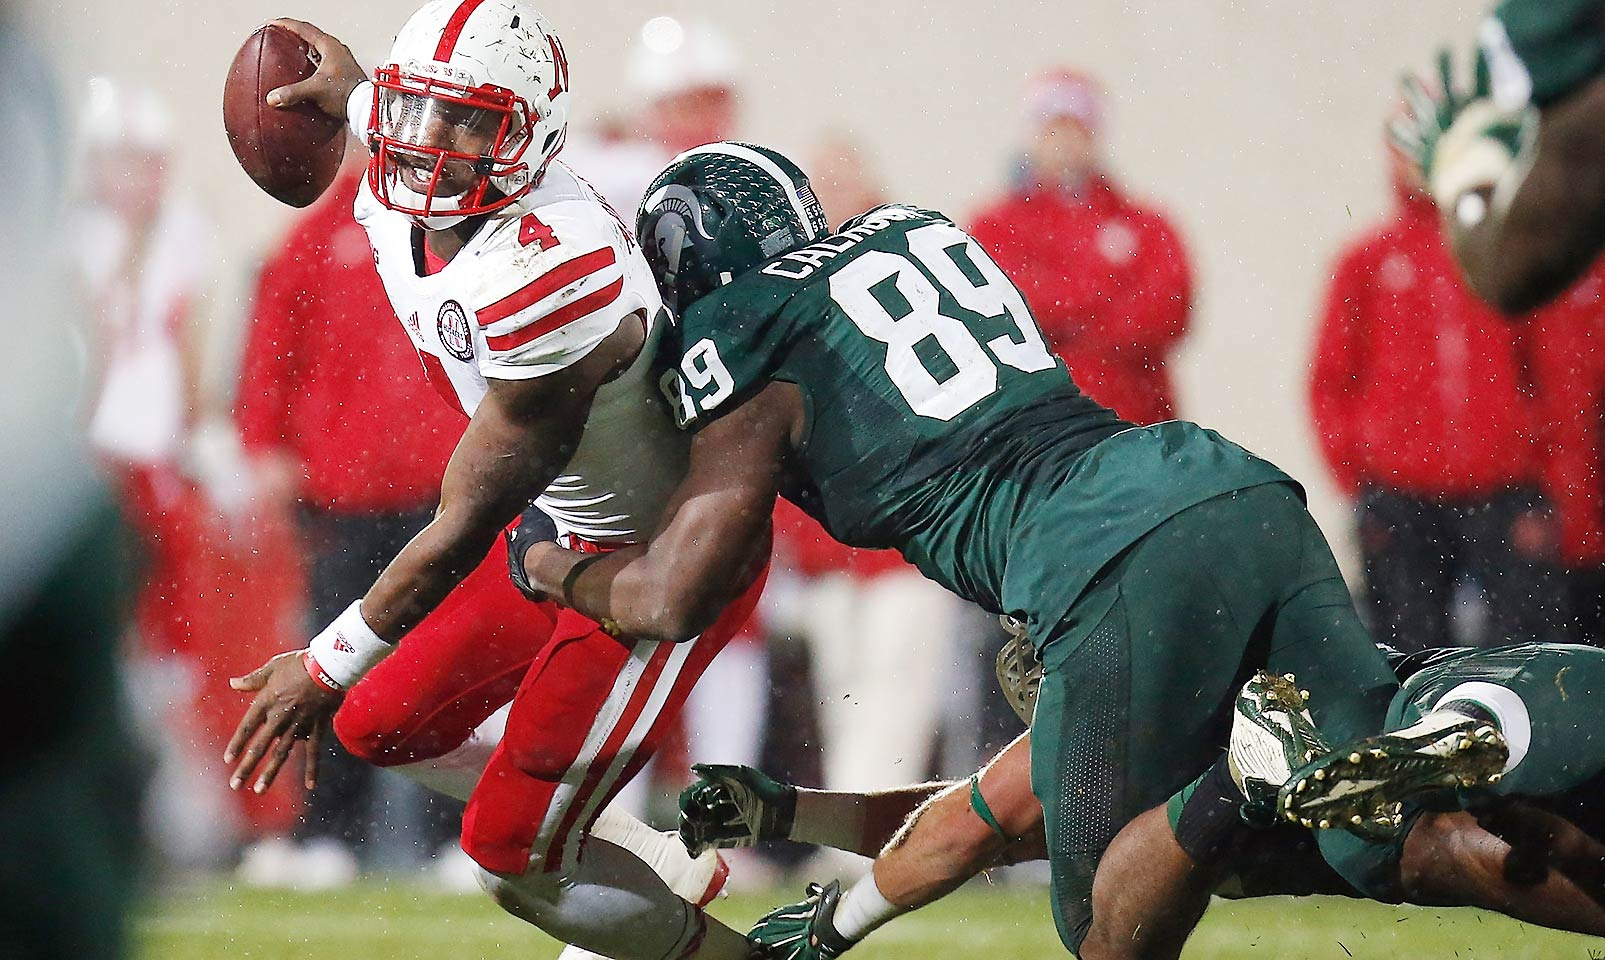 Calhoun enters his final season as one of the lynchpins of Michigan State's stellar defense. The defensive lineman is a menace in the backfield as evidenced by his eight sacks and 12.5 tackles for loss in 2014.